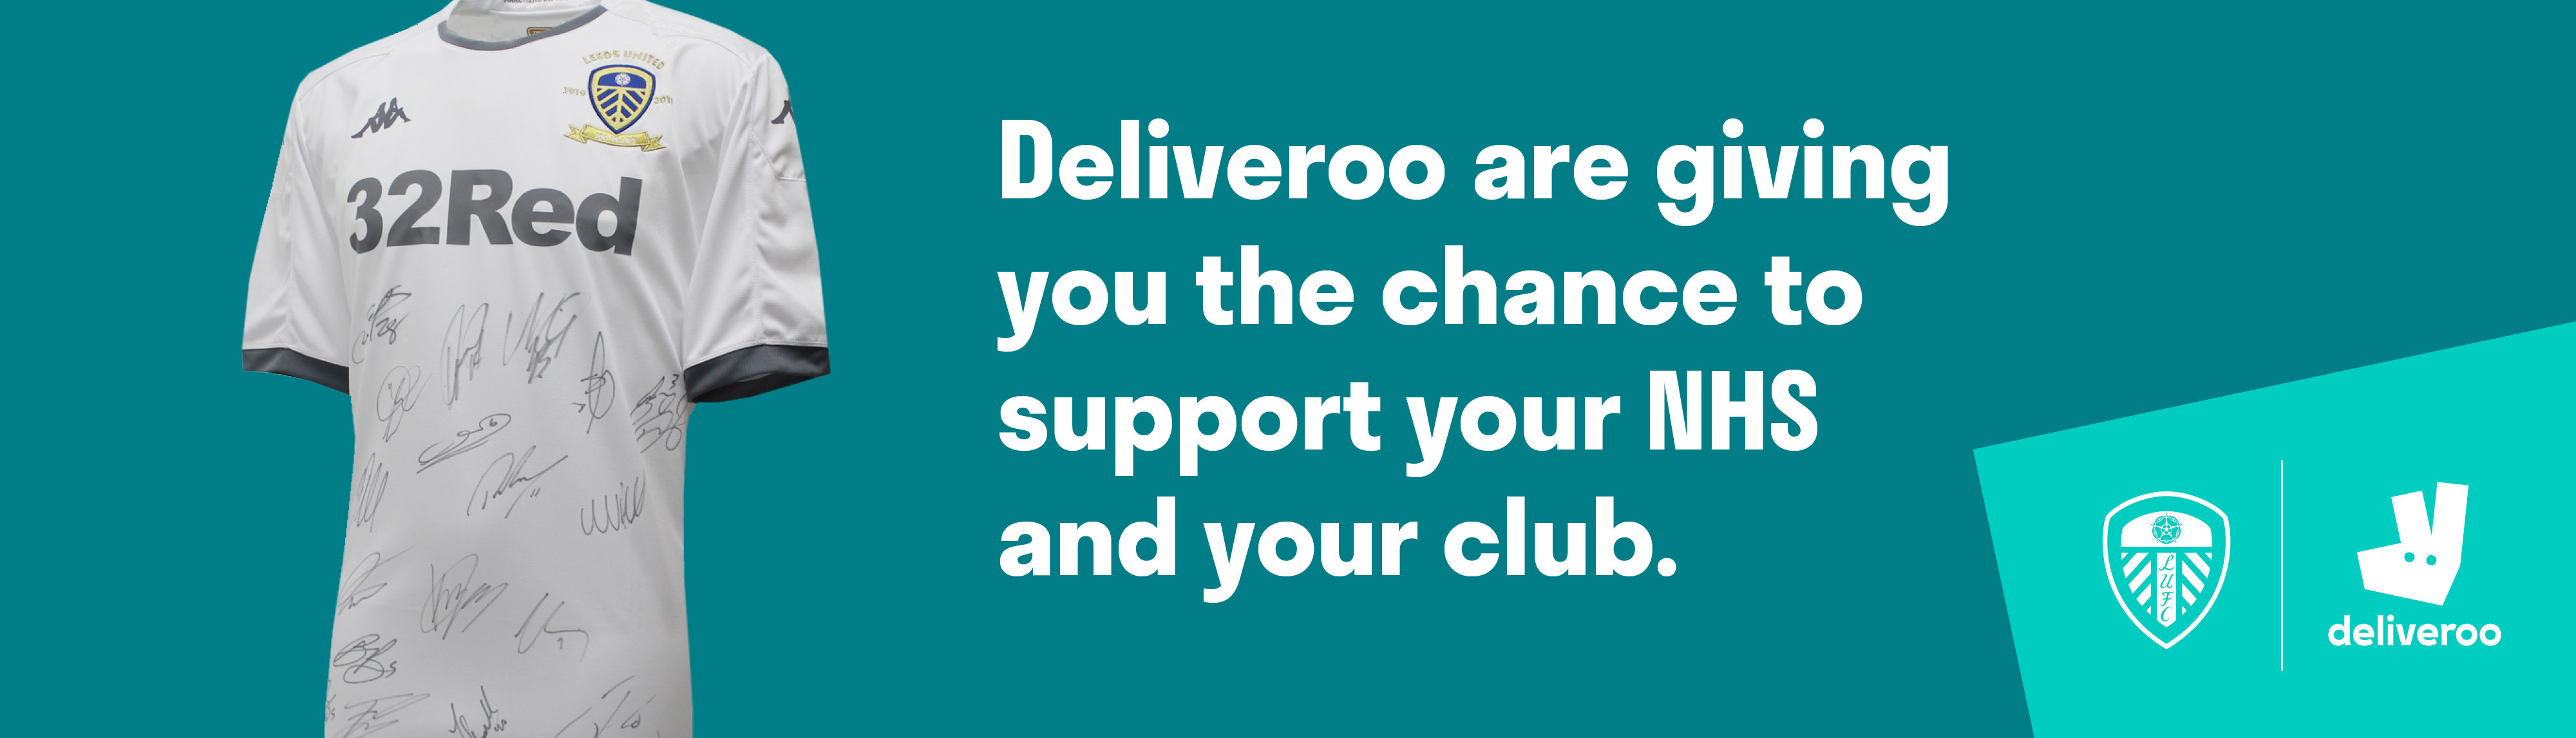 Deliveroo are giving you the chance to support your NHS and your club -  Leeds United